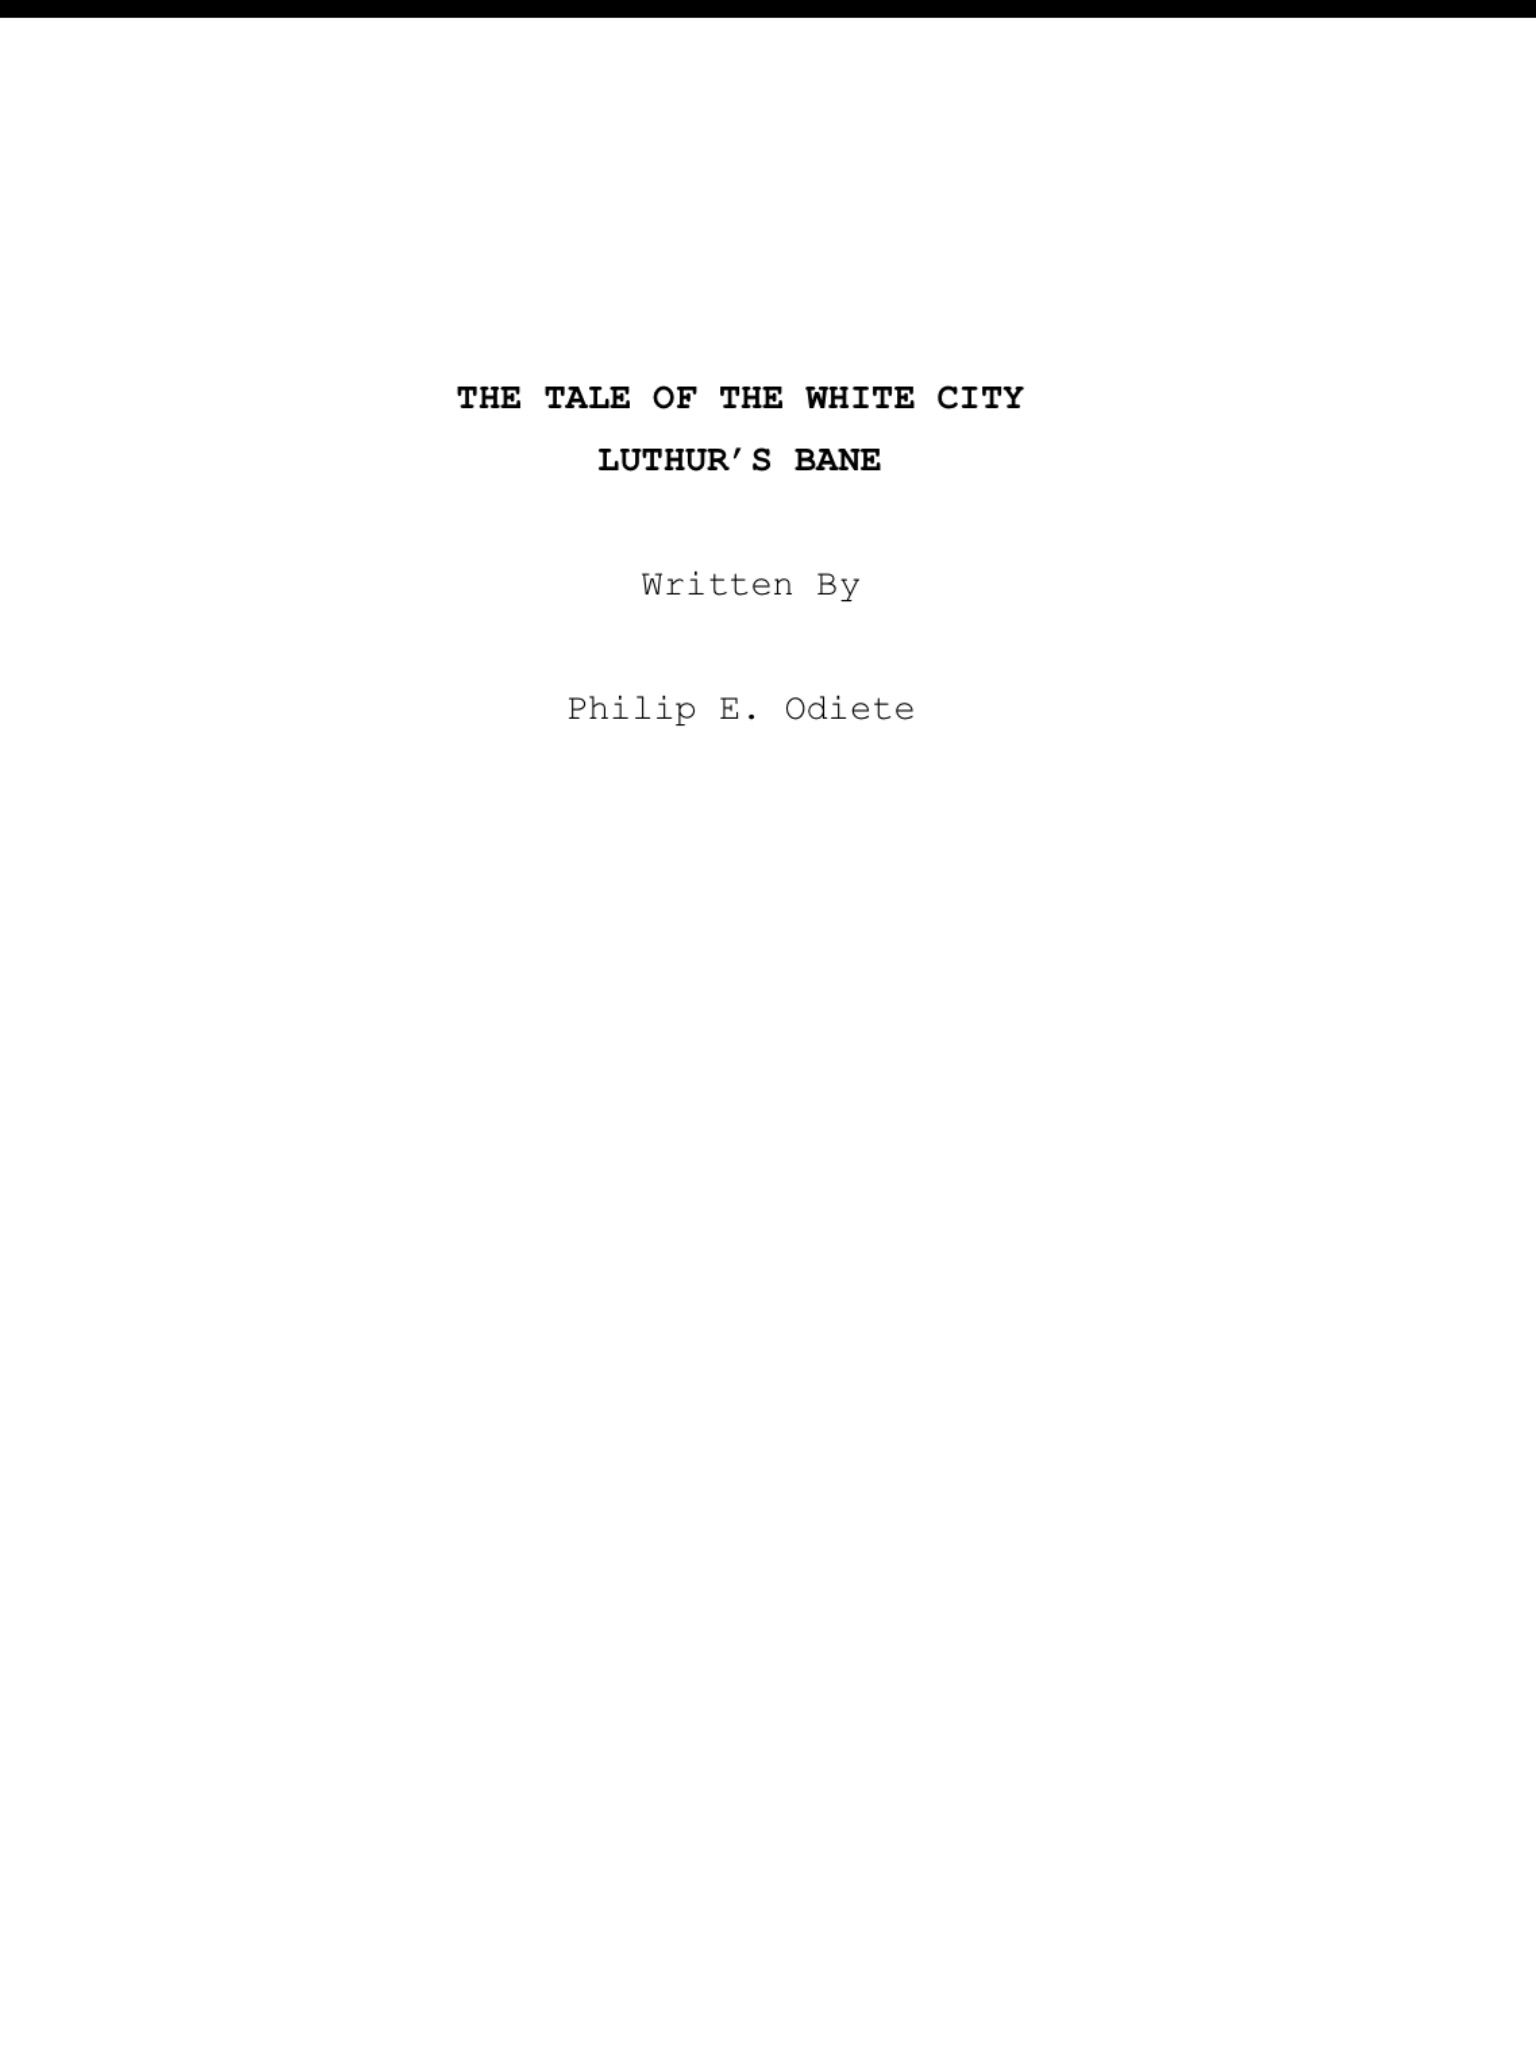 TALE OF THE WHITE CITY - LUTHUR'S BANE